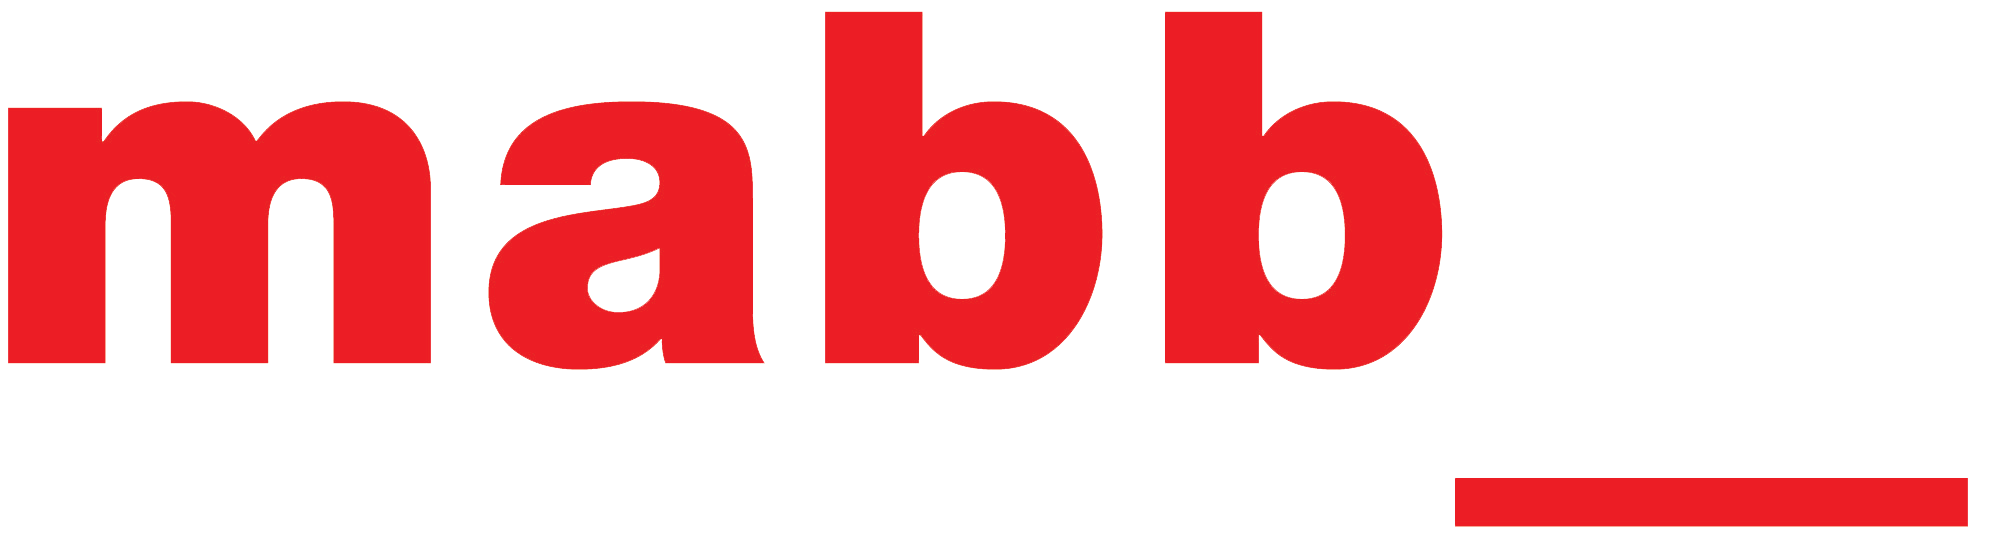 TV Hackday 2015 is hosted by mabb